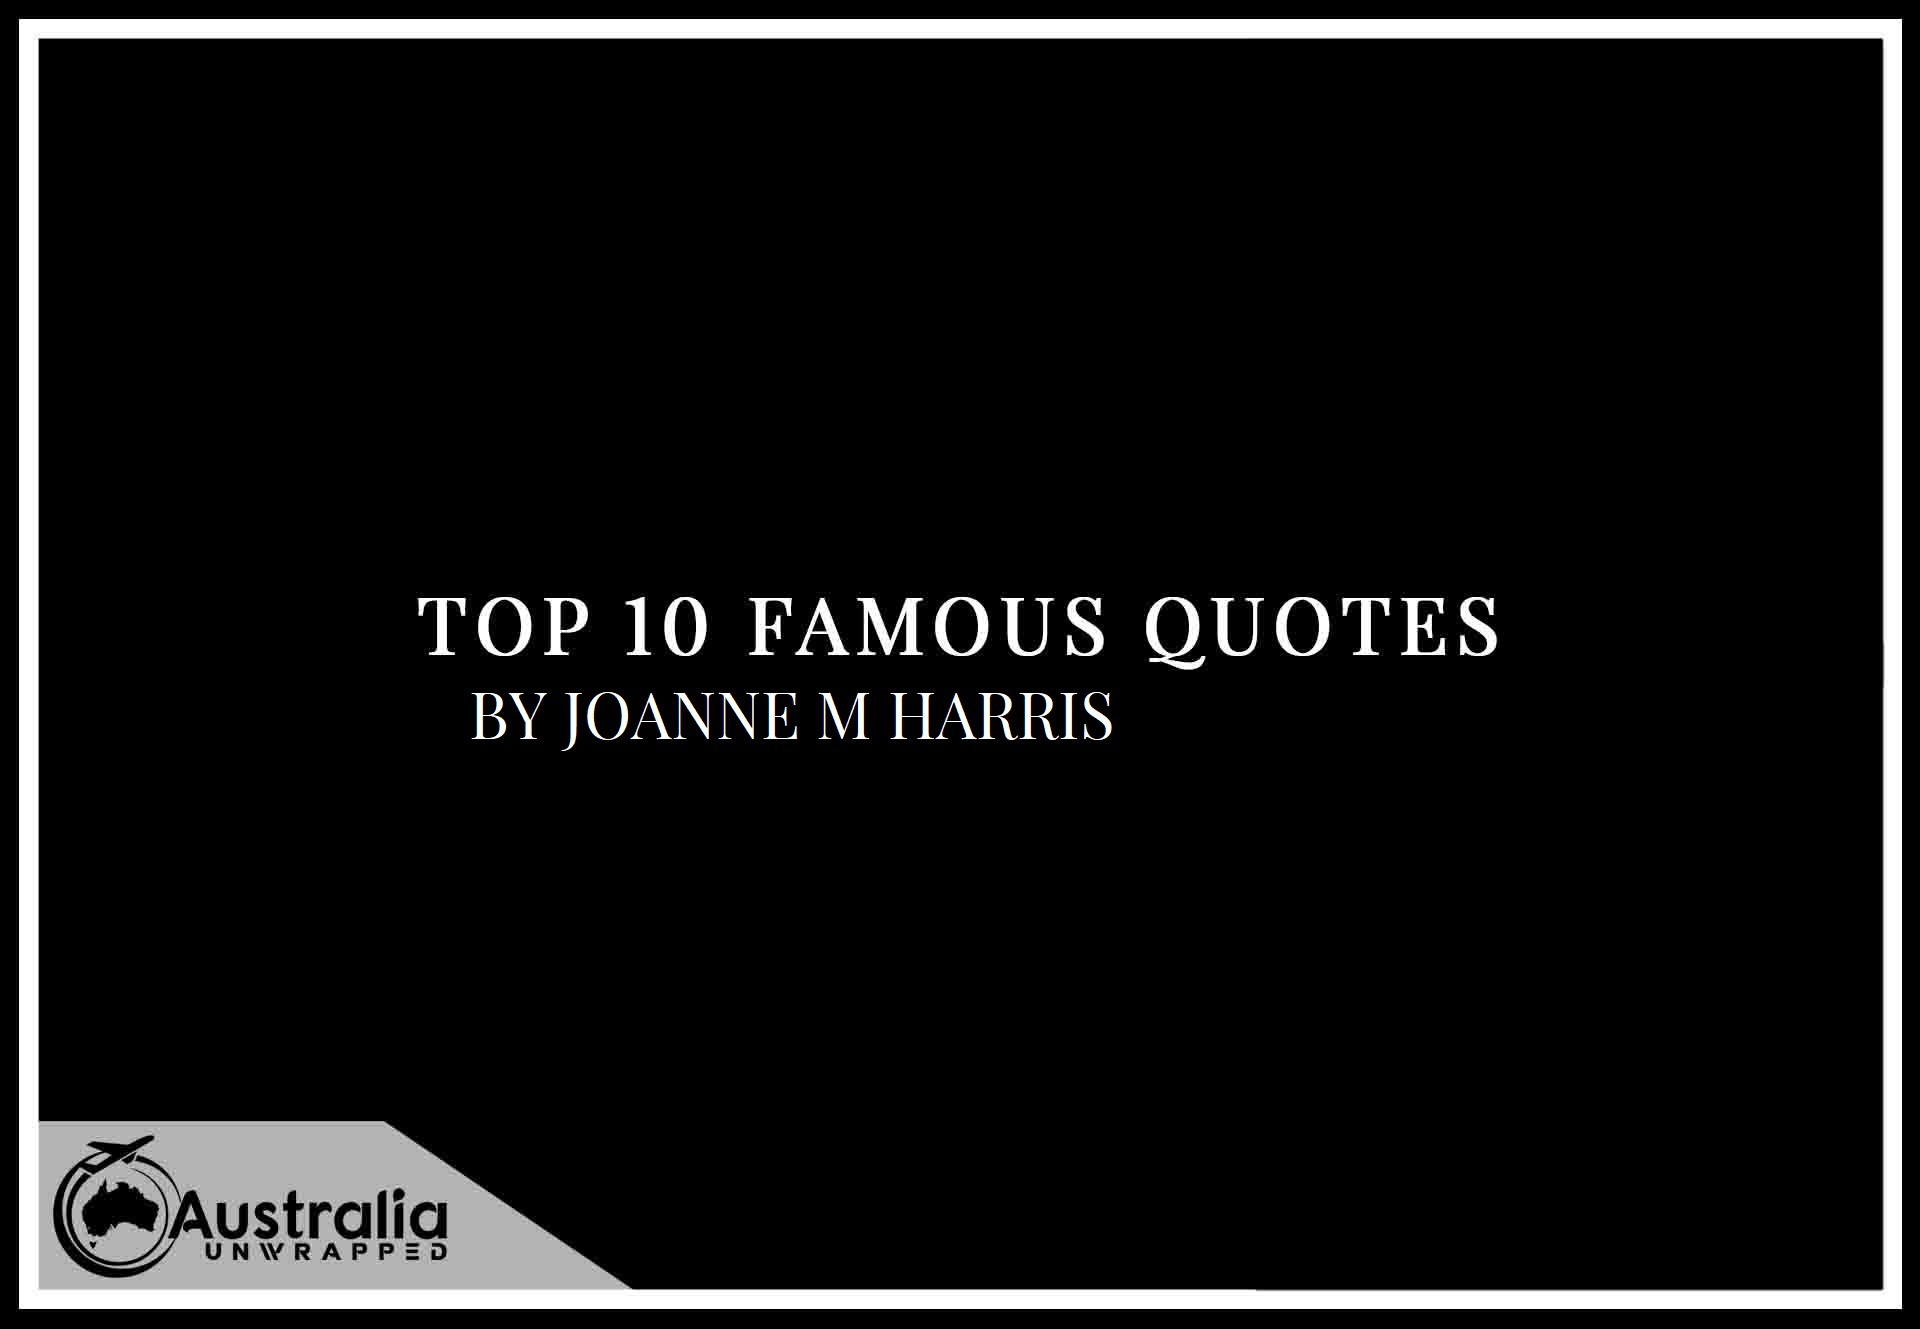 Top 10 Famous Quotes by Author Joanne M. Harris